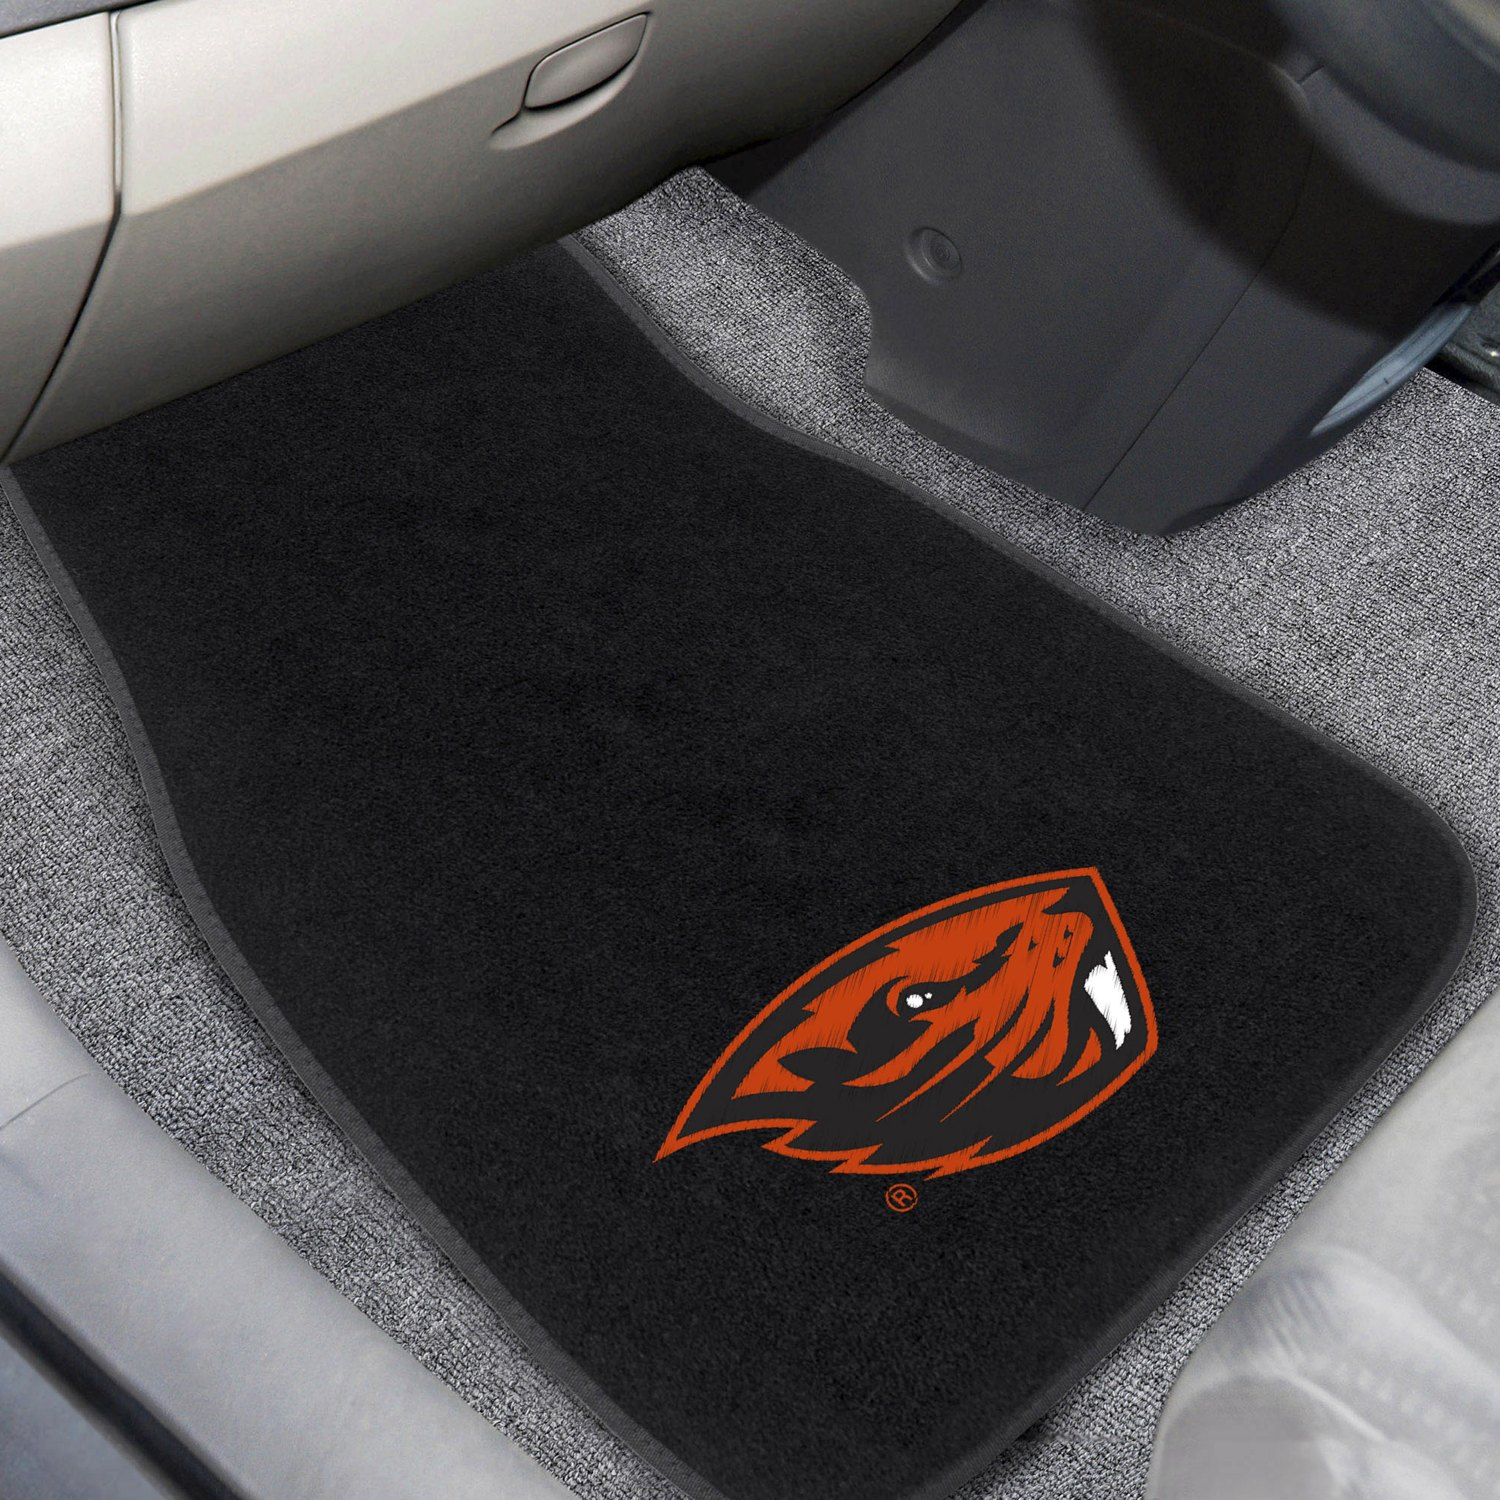 buy cheap FanMats® 20636 - Oregon State University Logo on Embroidered Floor Mats for 2015 RAM 1500 TRUCK Ebay & Amazon